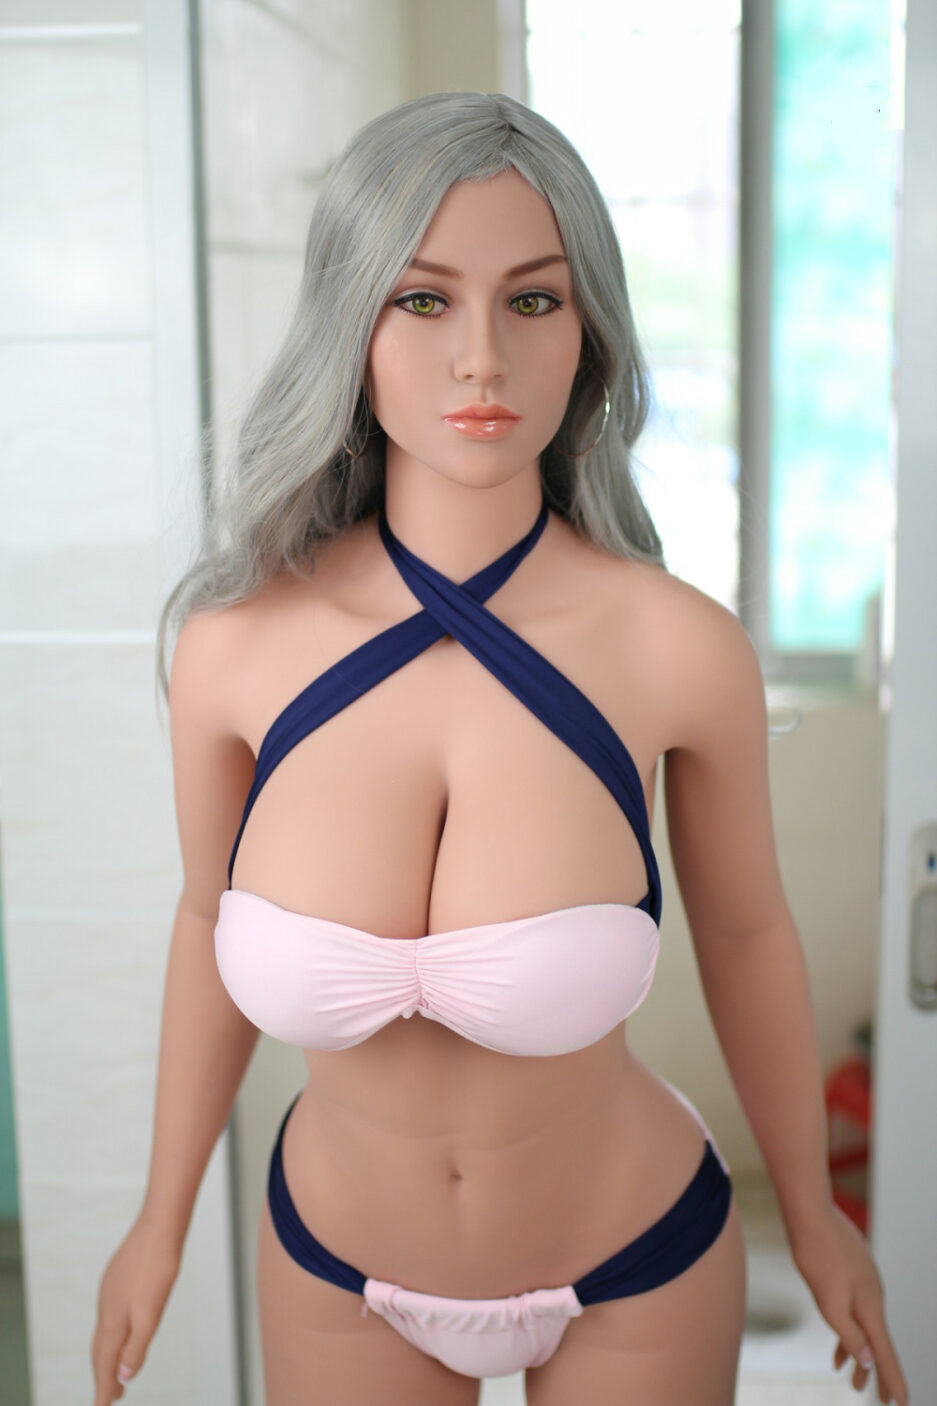 Thicc Sex Doll With Big Tits